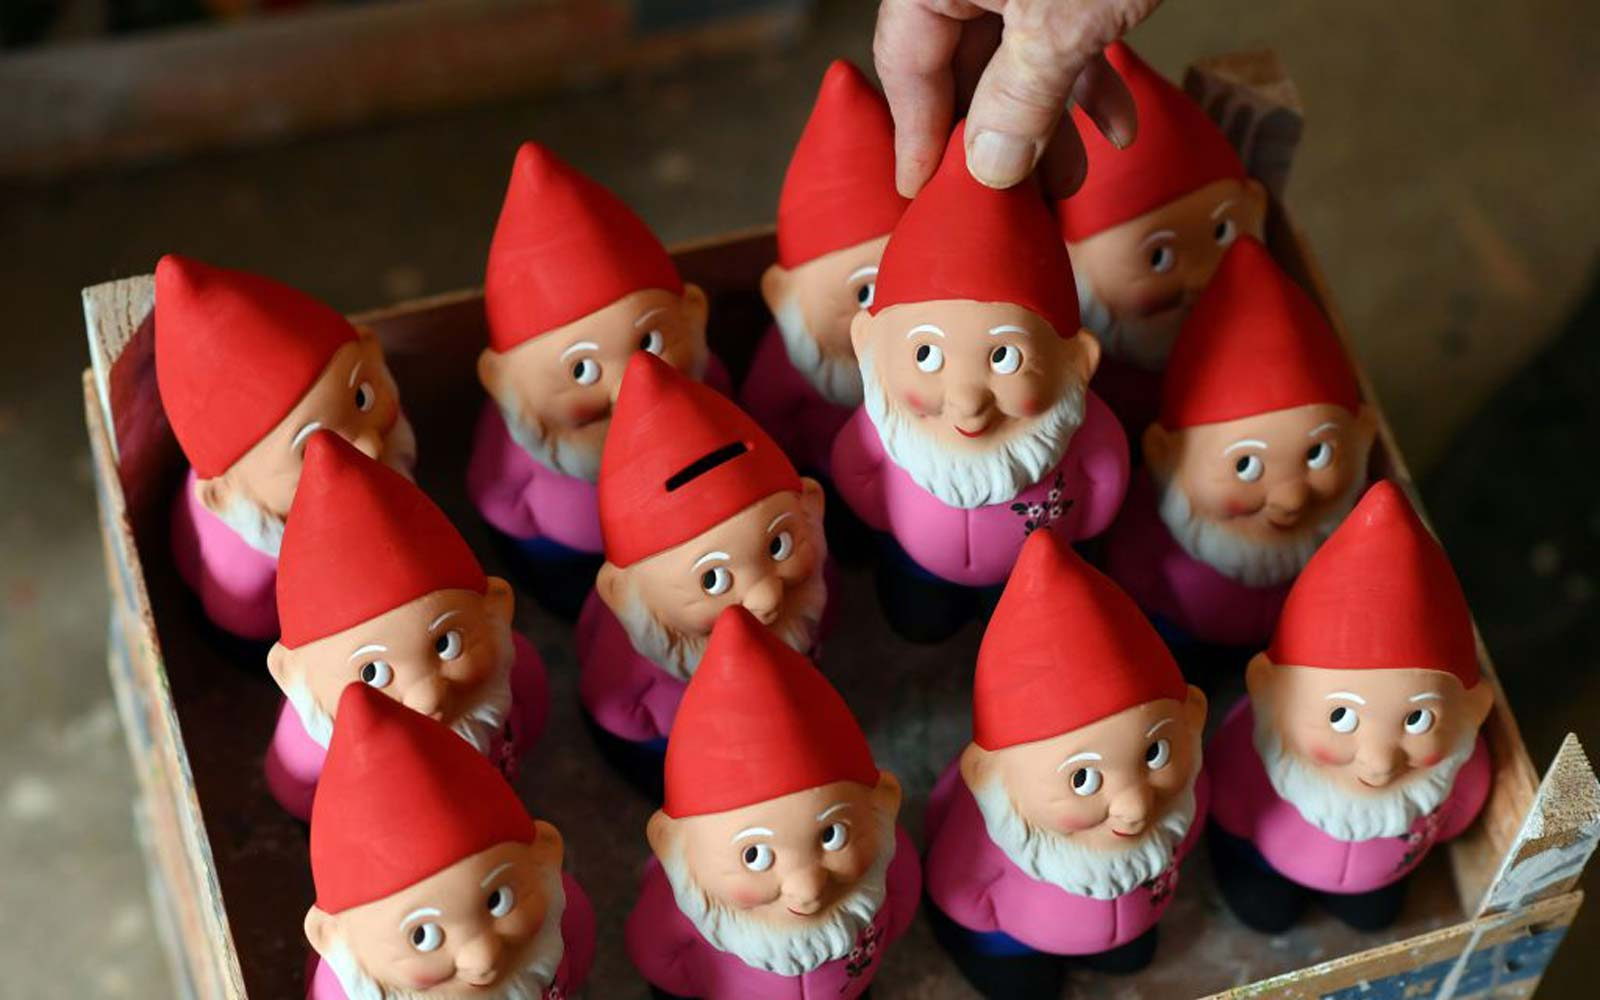 A Top Garden Gnome Maker Needs a Successor — but No One Is Stepping Up